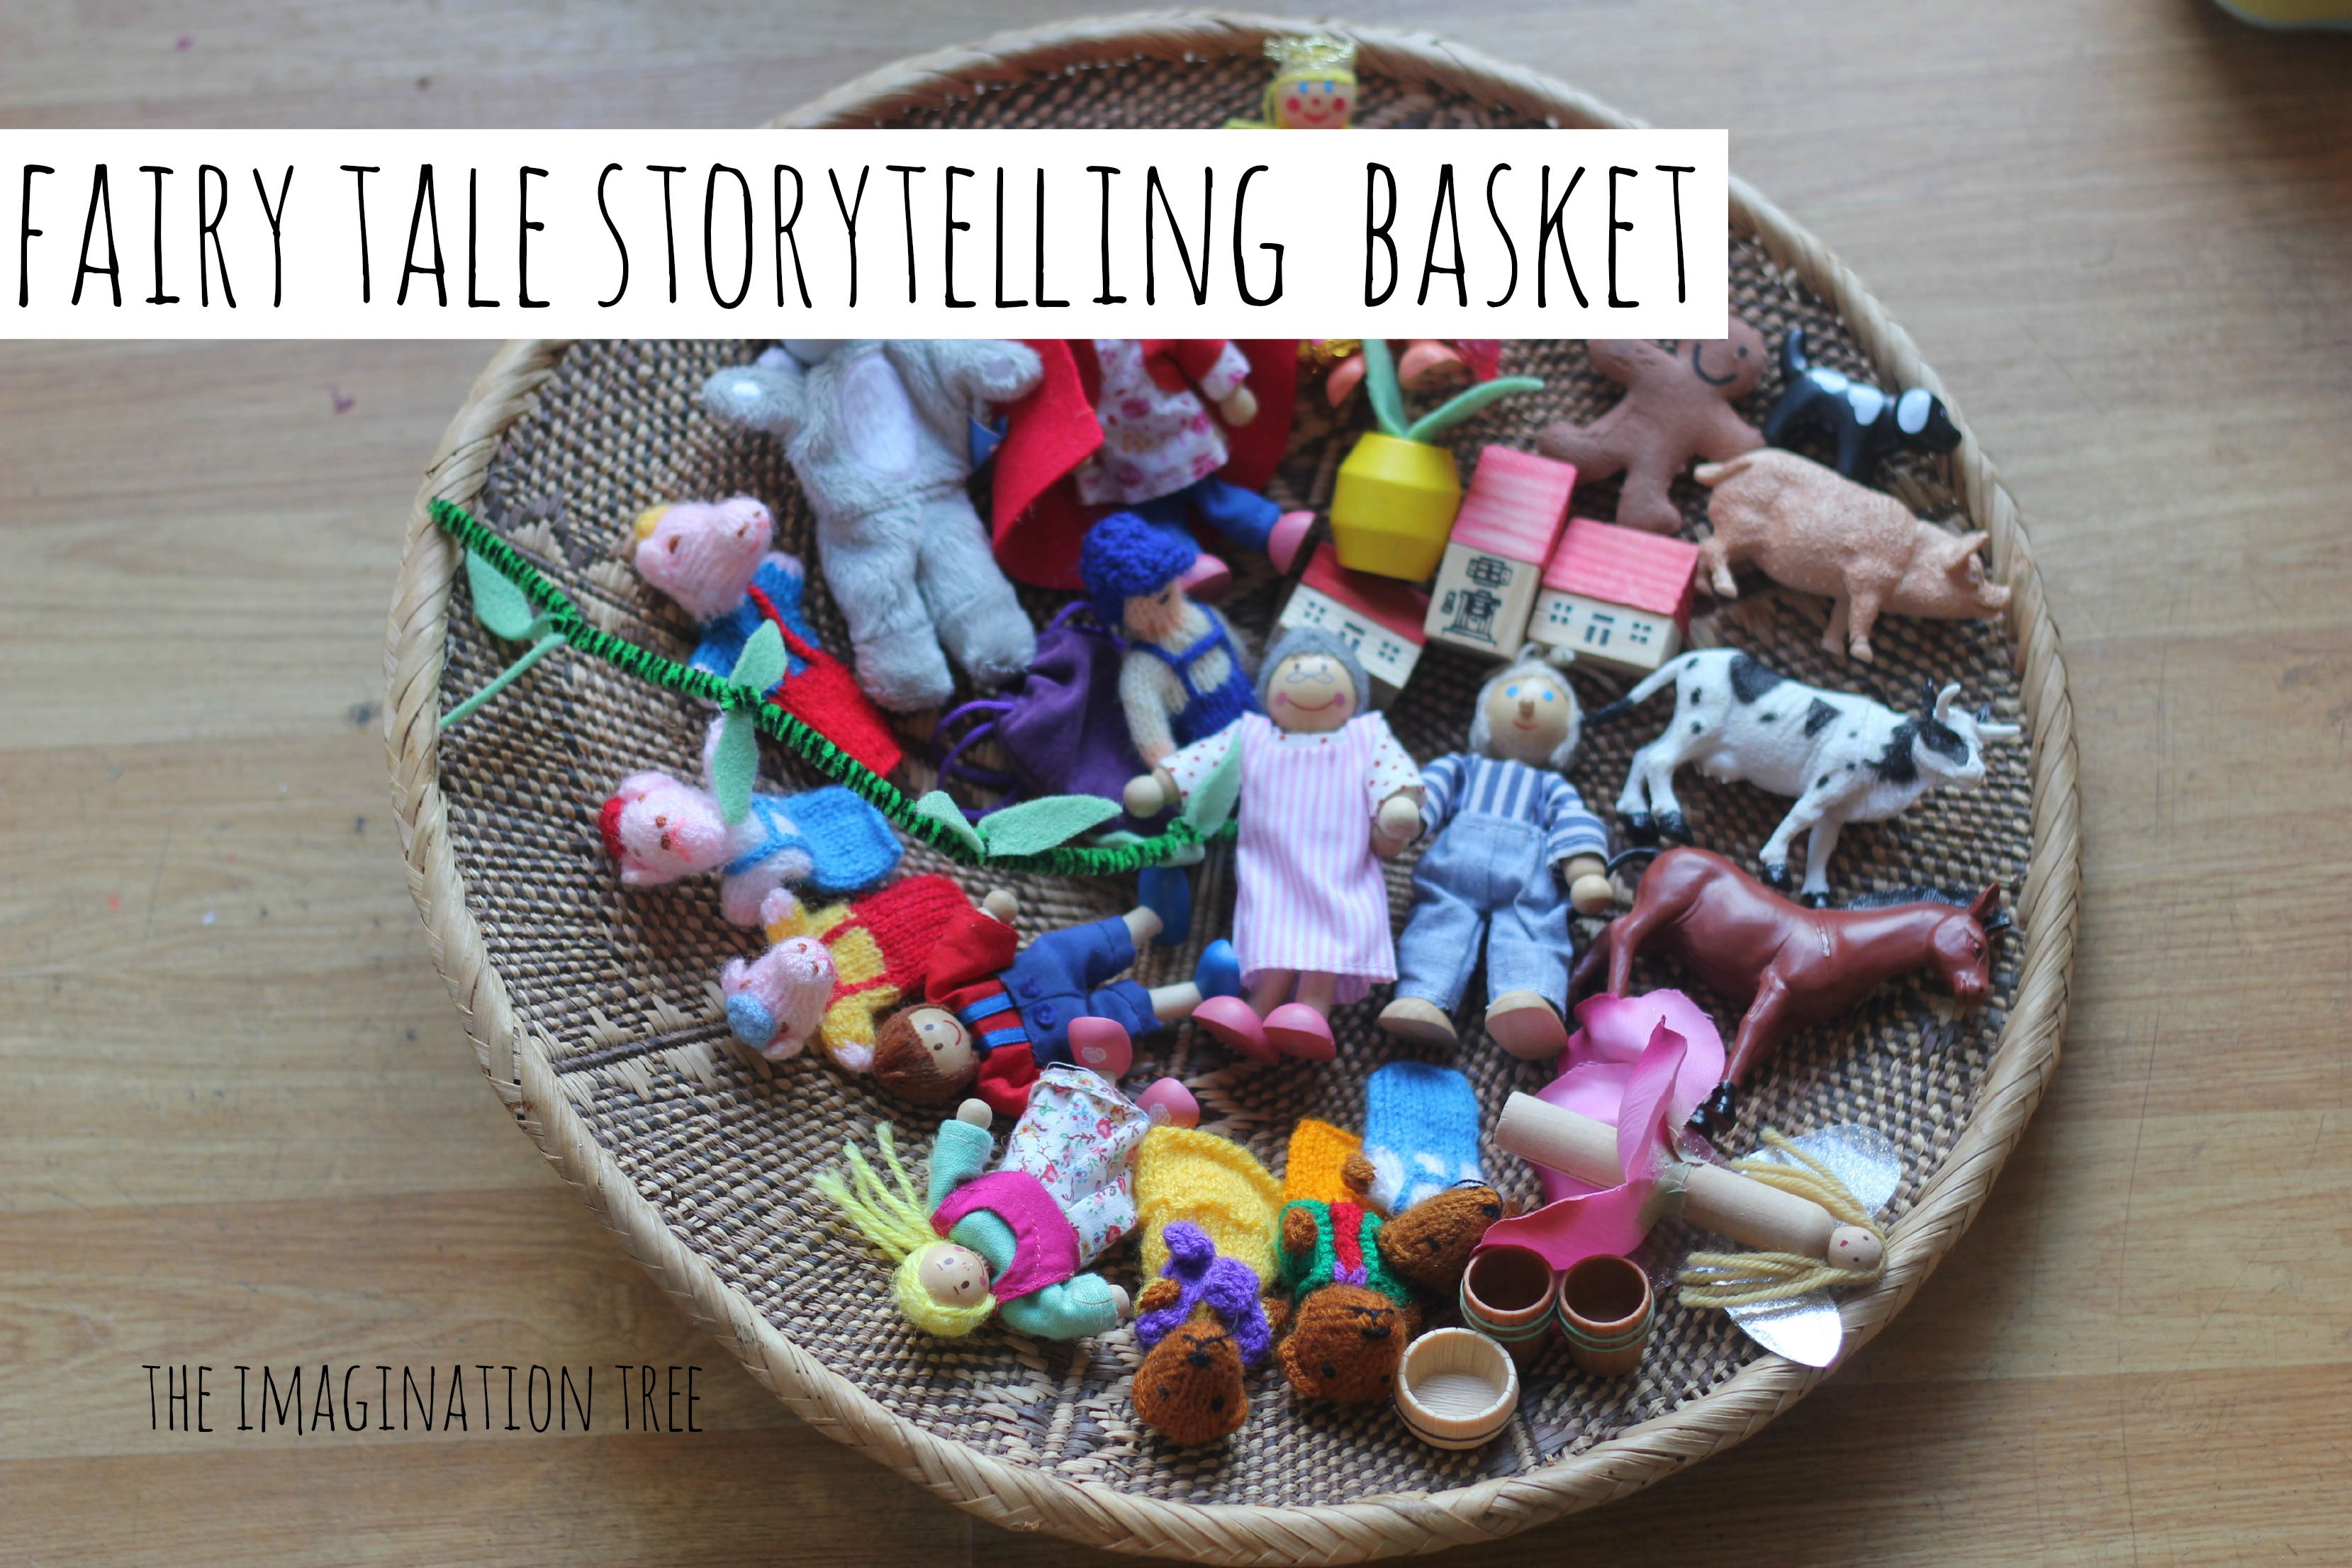 Fairytale Storytelling Basket The Imagination Tree